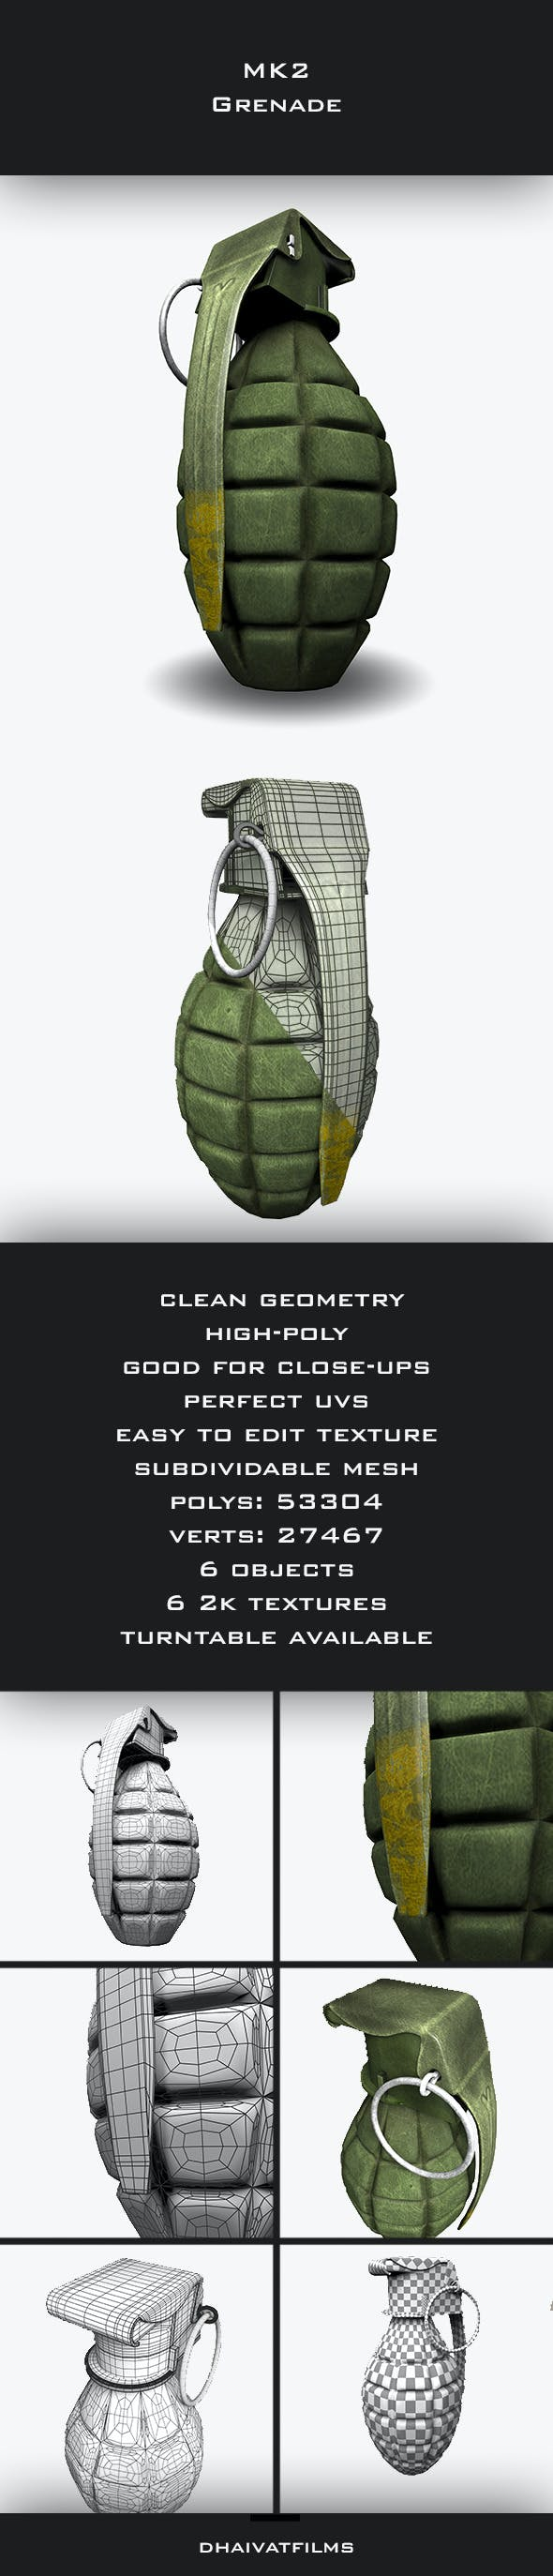 MK2 Grenade - 3DOcean Item for Sale